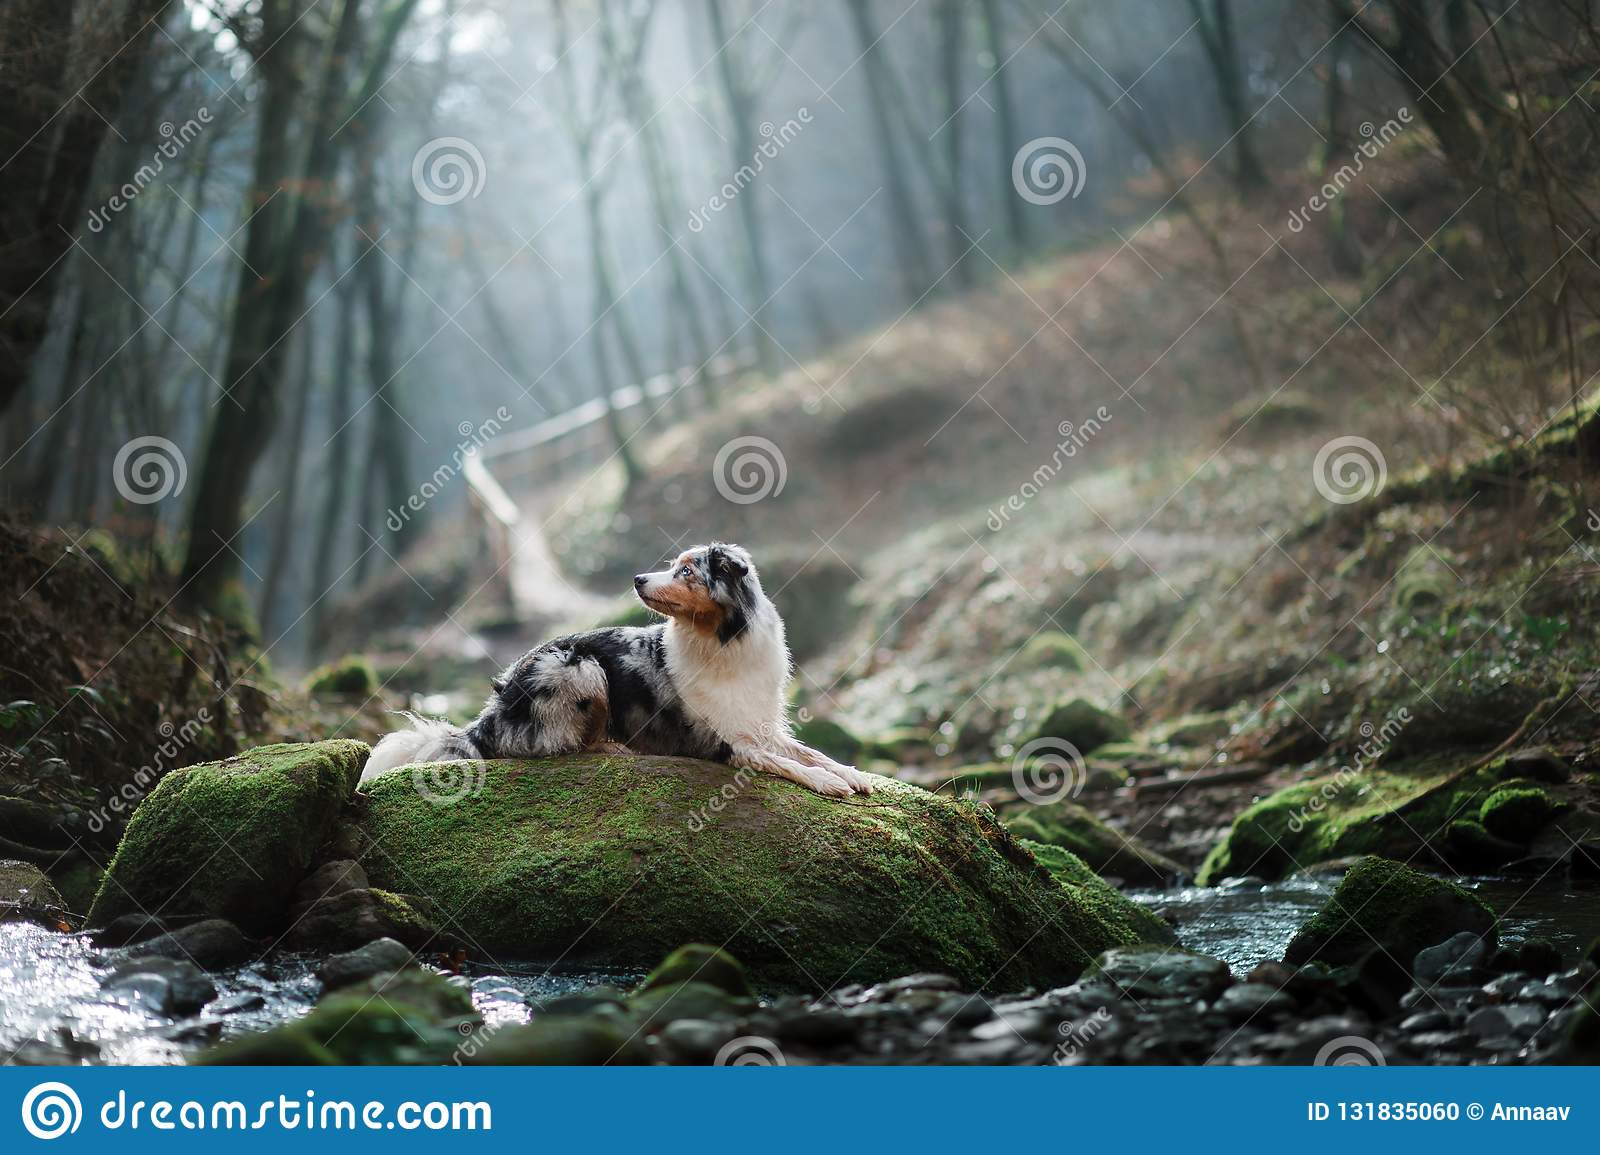 Dog in nature in the morning. Australian shepherd at sunrise near the water. Pet for a walk